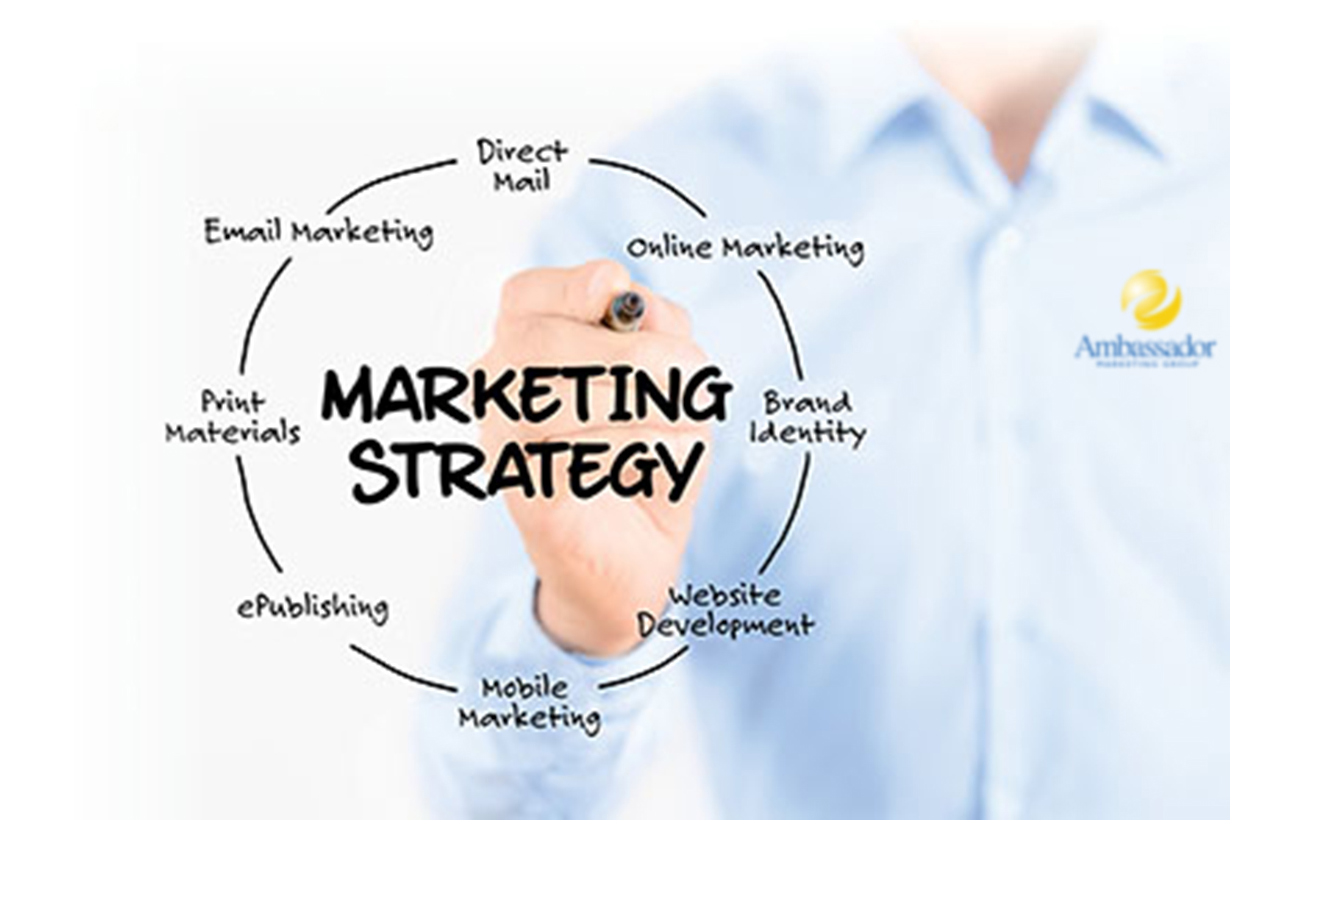 market approach Market approach one of our major strengths is our ability to compete successfully in different markets and regions, by adapting our strategy and technology despite this being a highly competitive sector, with many players, we have strong relationships with established international and national retailers in western europe, poland and australia.